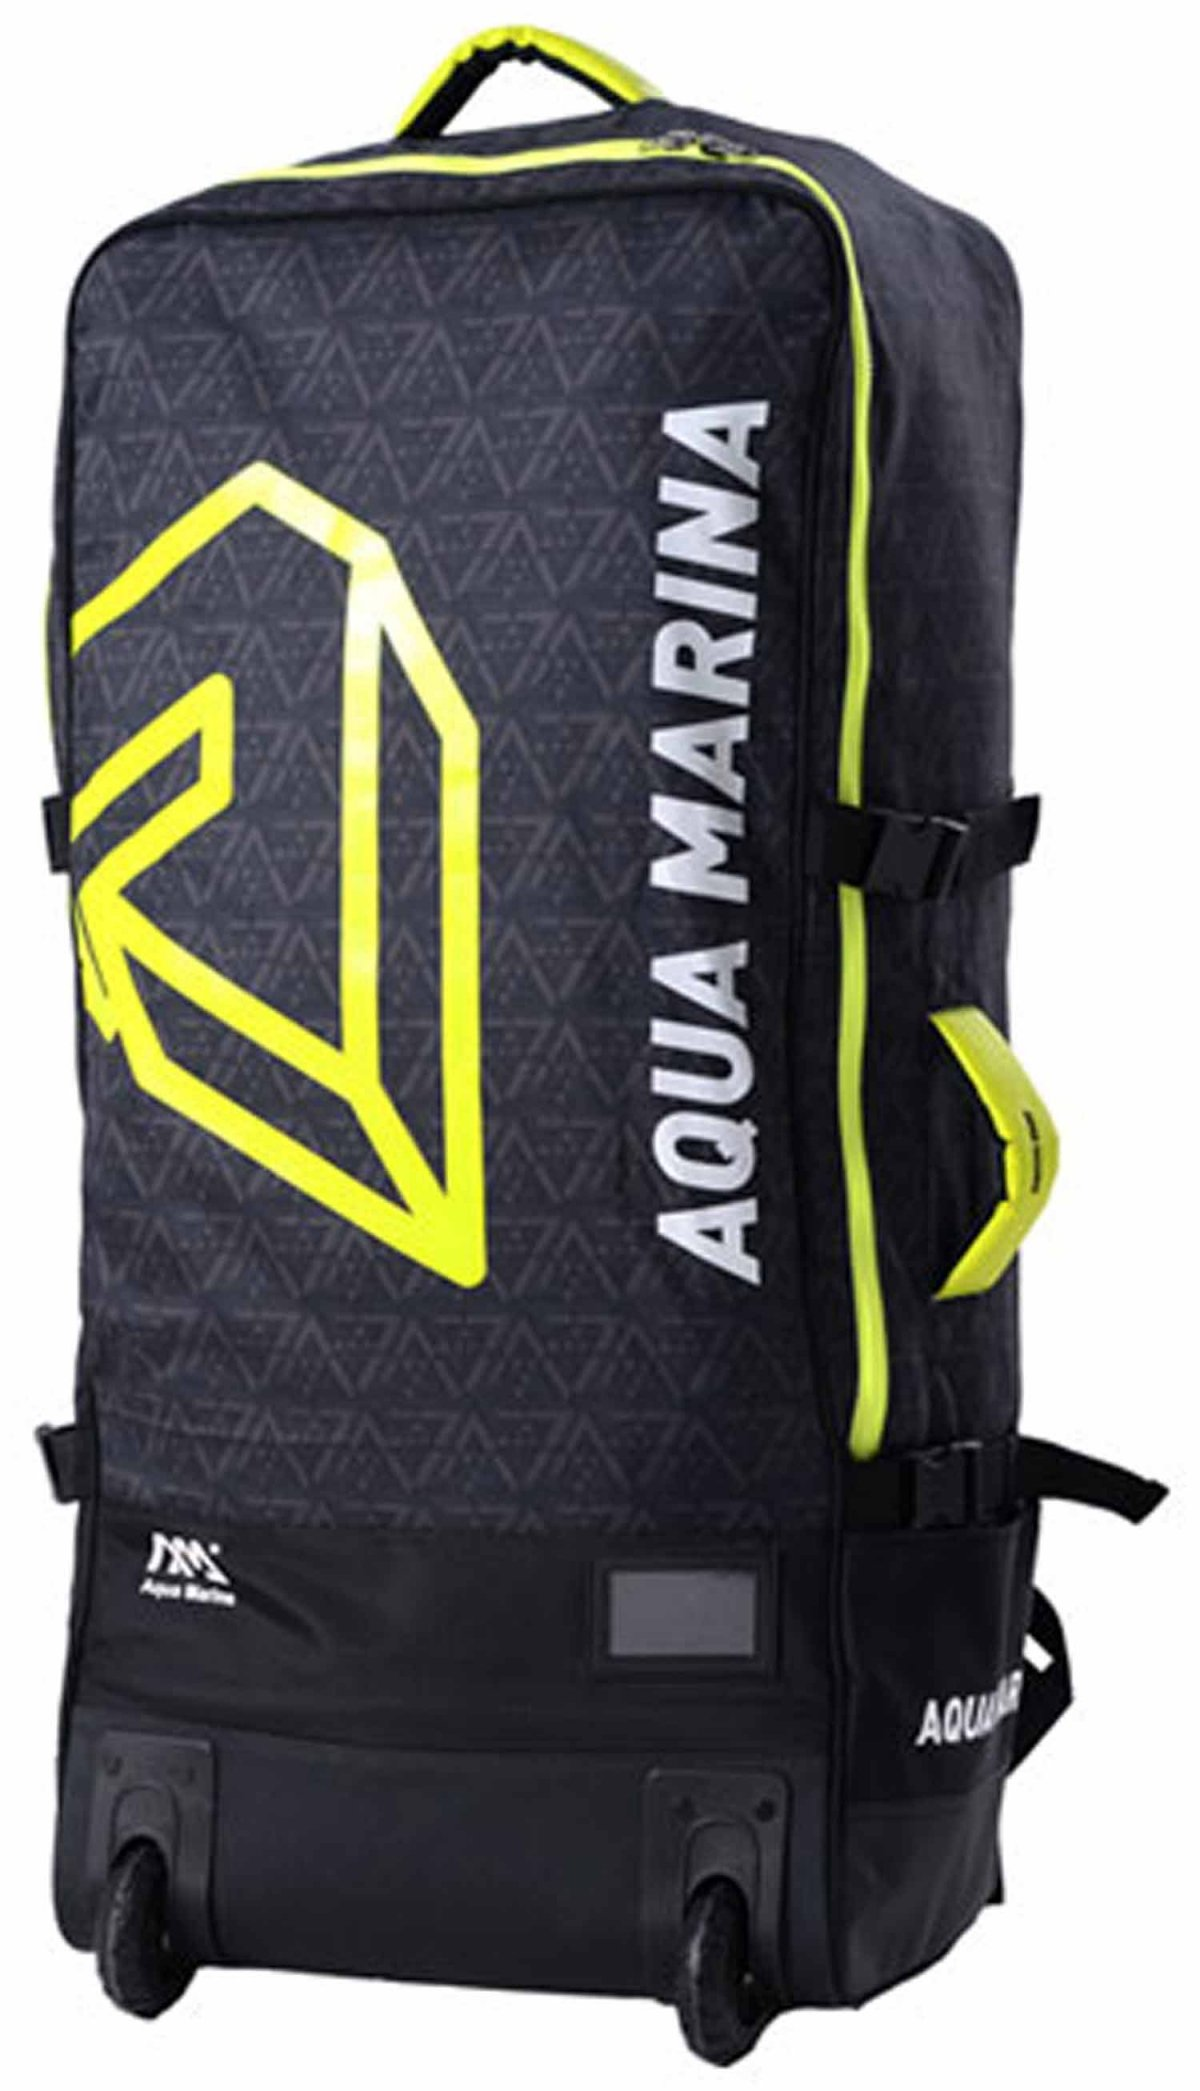 Aqua Marina Easy Transport Premium Wheely Backpack Clamshell Design with Padded Shoulder Straps for All Inflatable Paddleboards and Kayaks